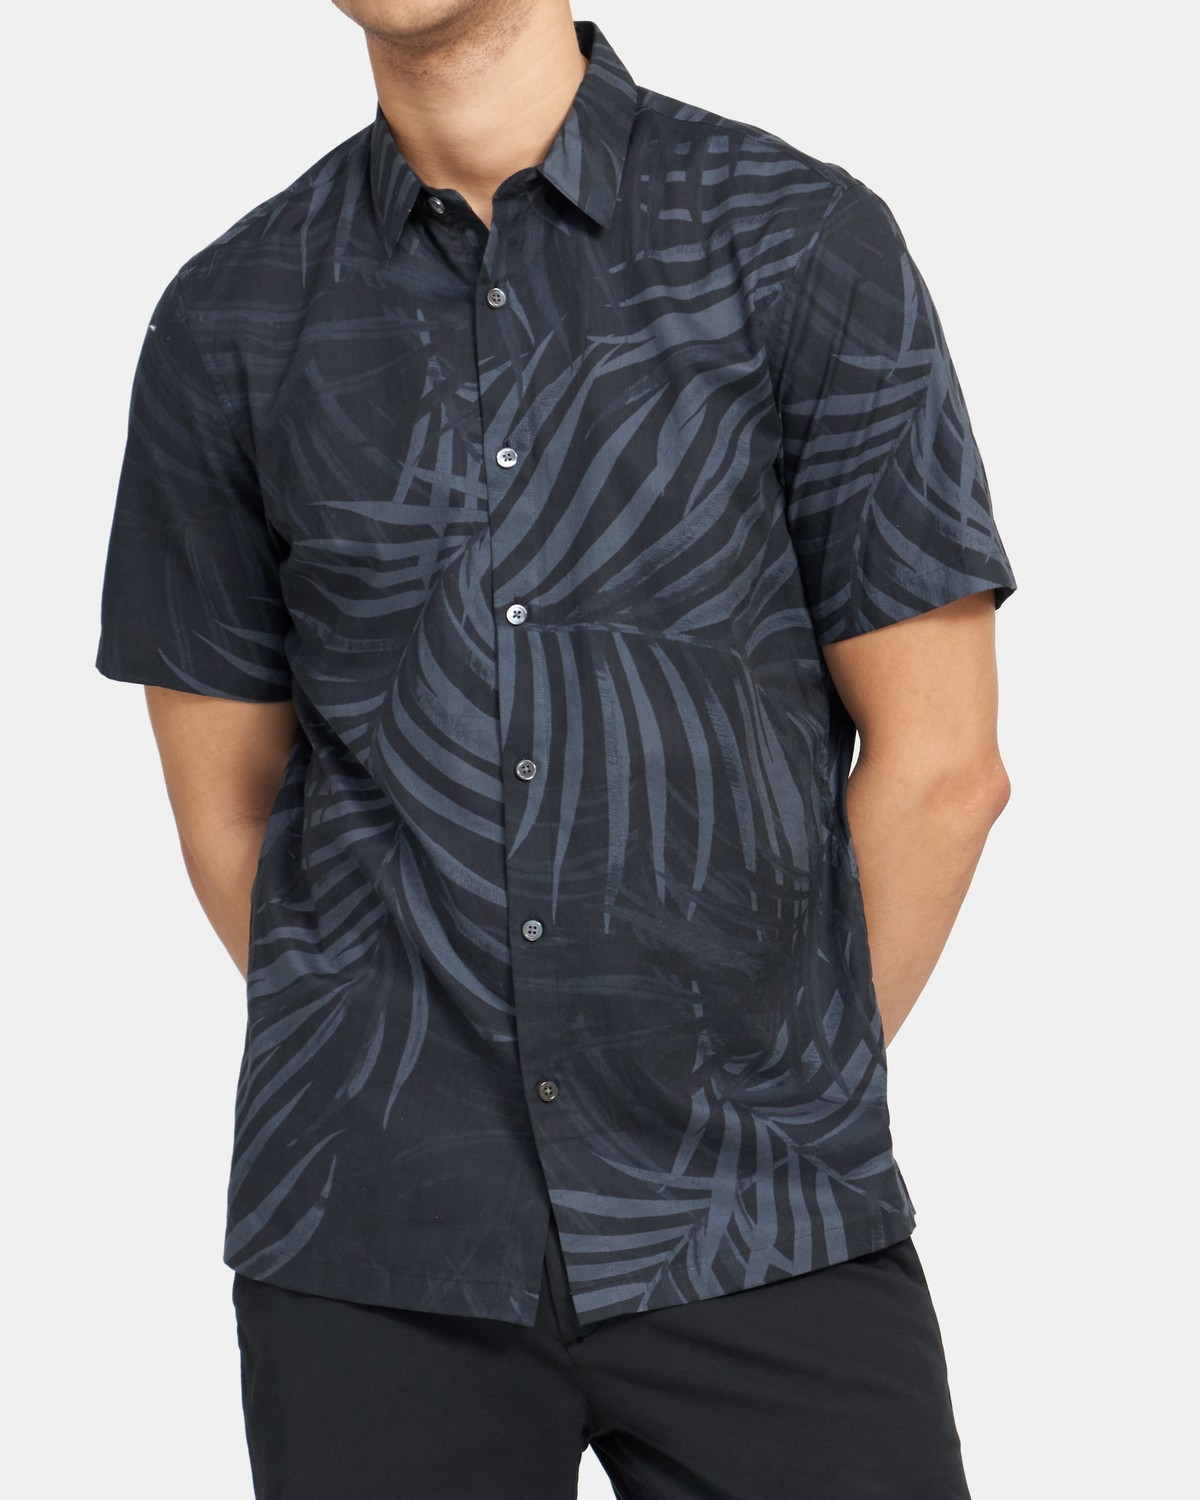 Standard-Fit Short-Sleeve Shirt in Stretch Cotton